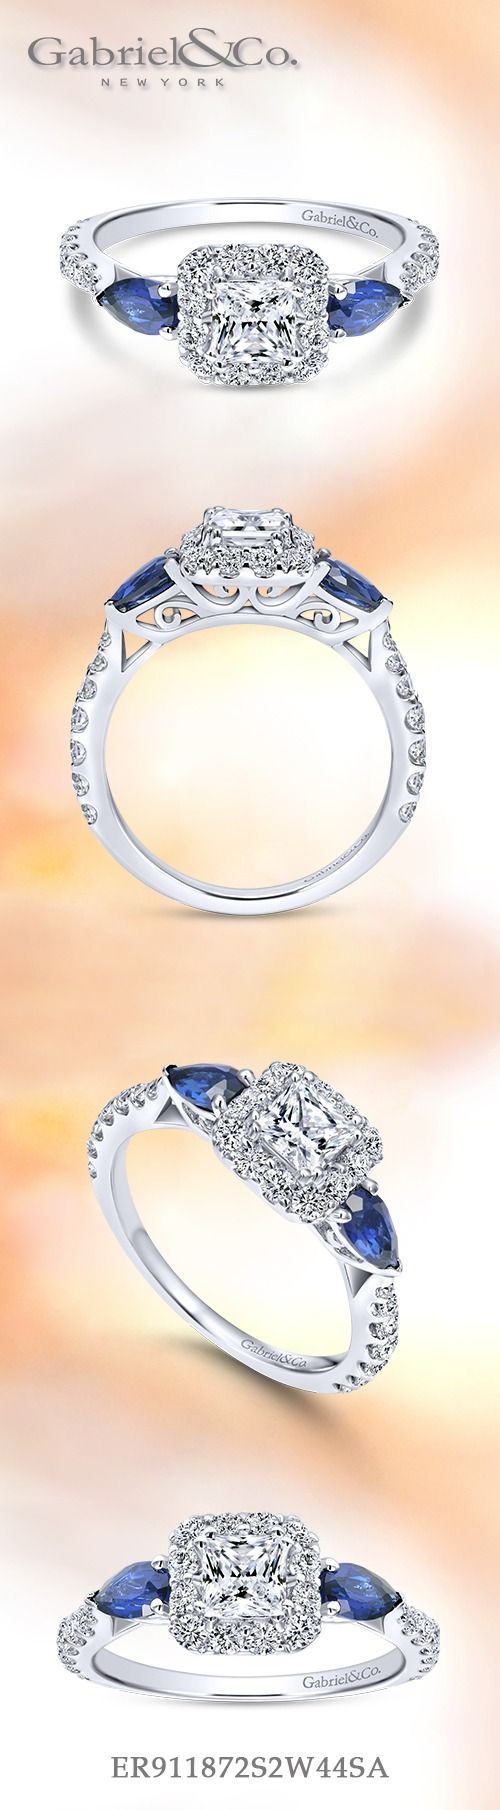 Gabriel NY - Preferred Fine Jewelry and Bridal Brand. 14k White Gold Princess Cut Halo Engagement ring. In this captivating white gold engagement ring, a pair of deep blue pear cut sapphires frame a princess cut diamond in a diamond halo. Find your nearest retailer-> https://www.gabrielny.com/storelocator